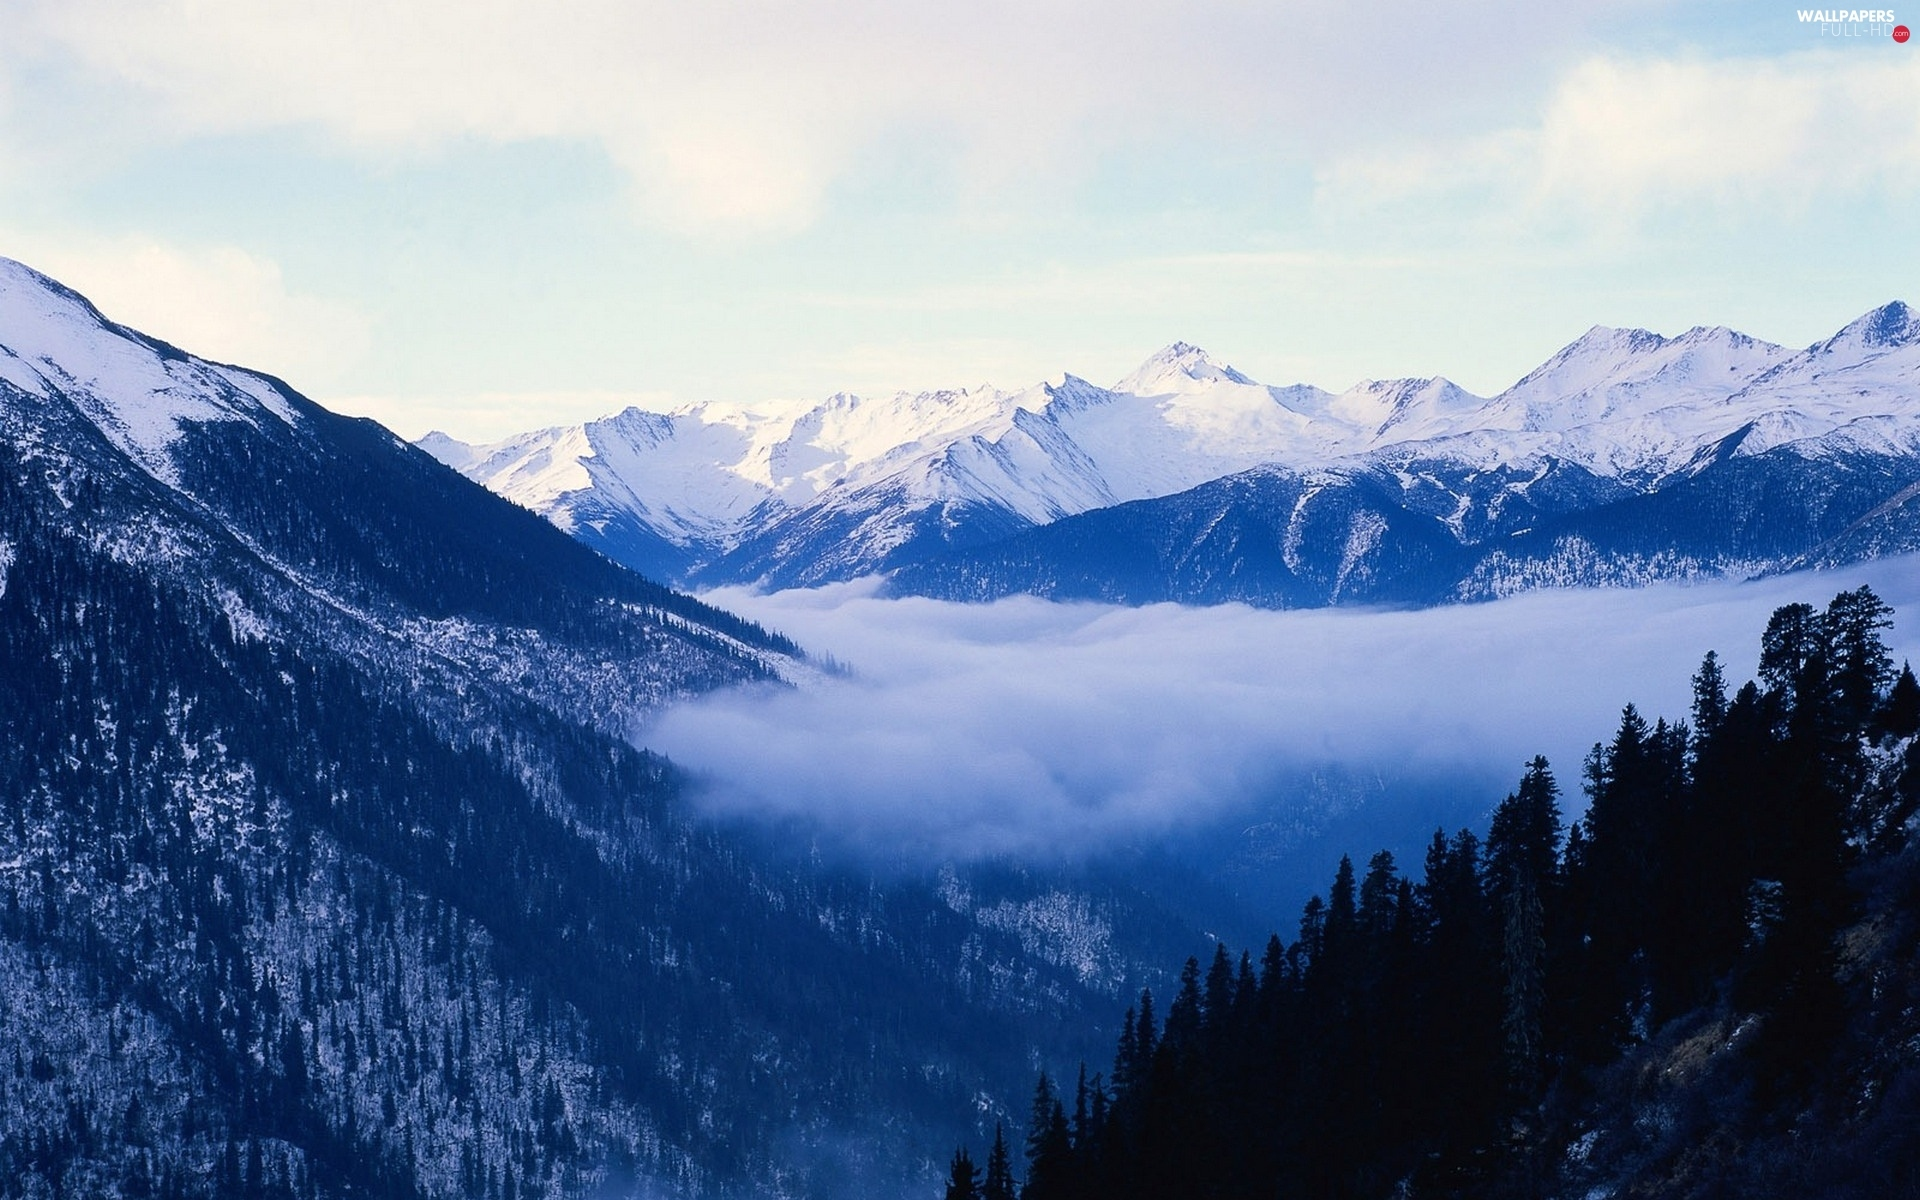 forest, peaks, Mountains, Fog, Snowy